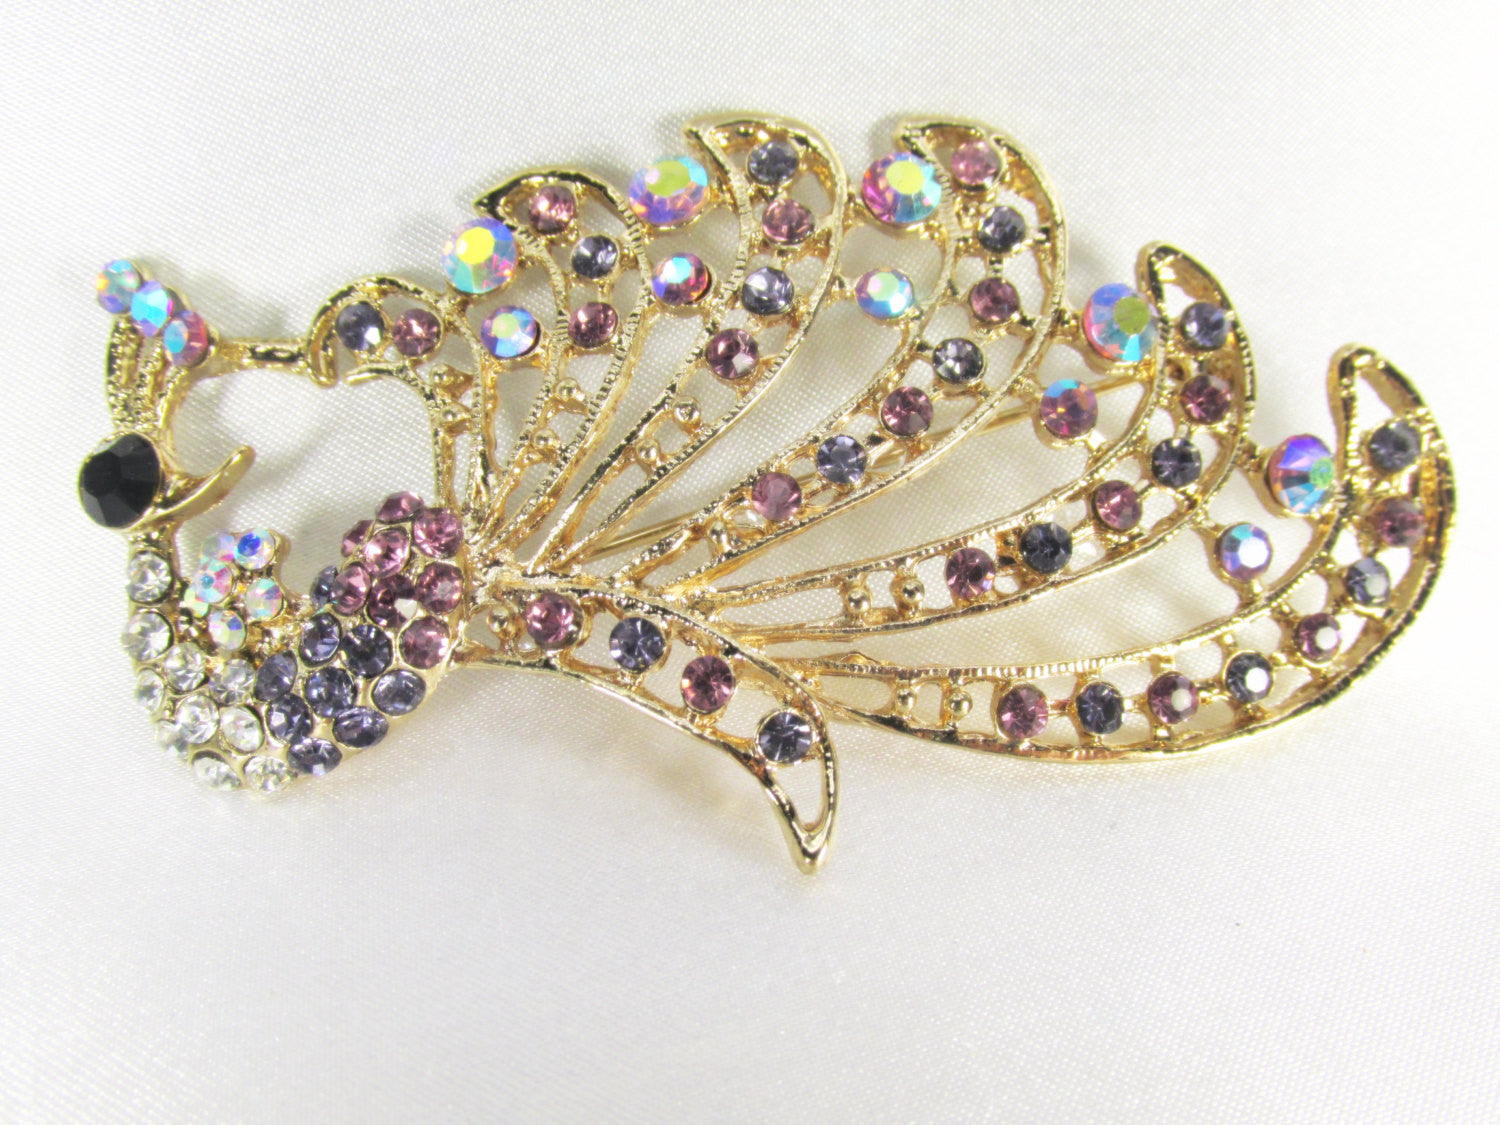 Peacock Cascading Brooch in Purple, Turquoise and Gold - Odyssey Cache - 2